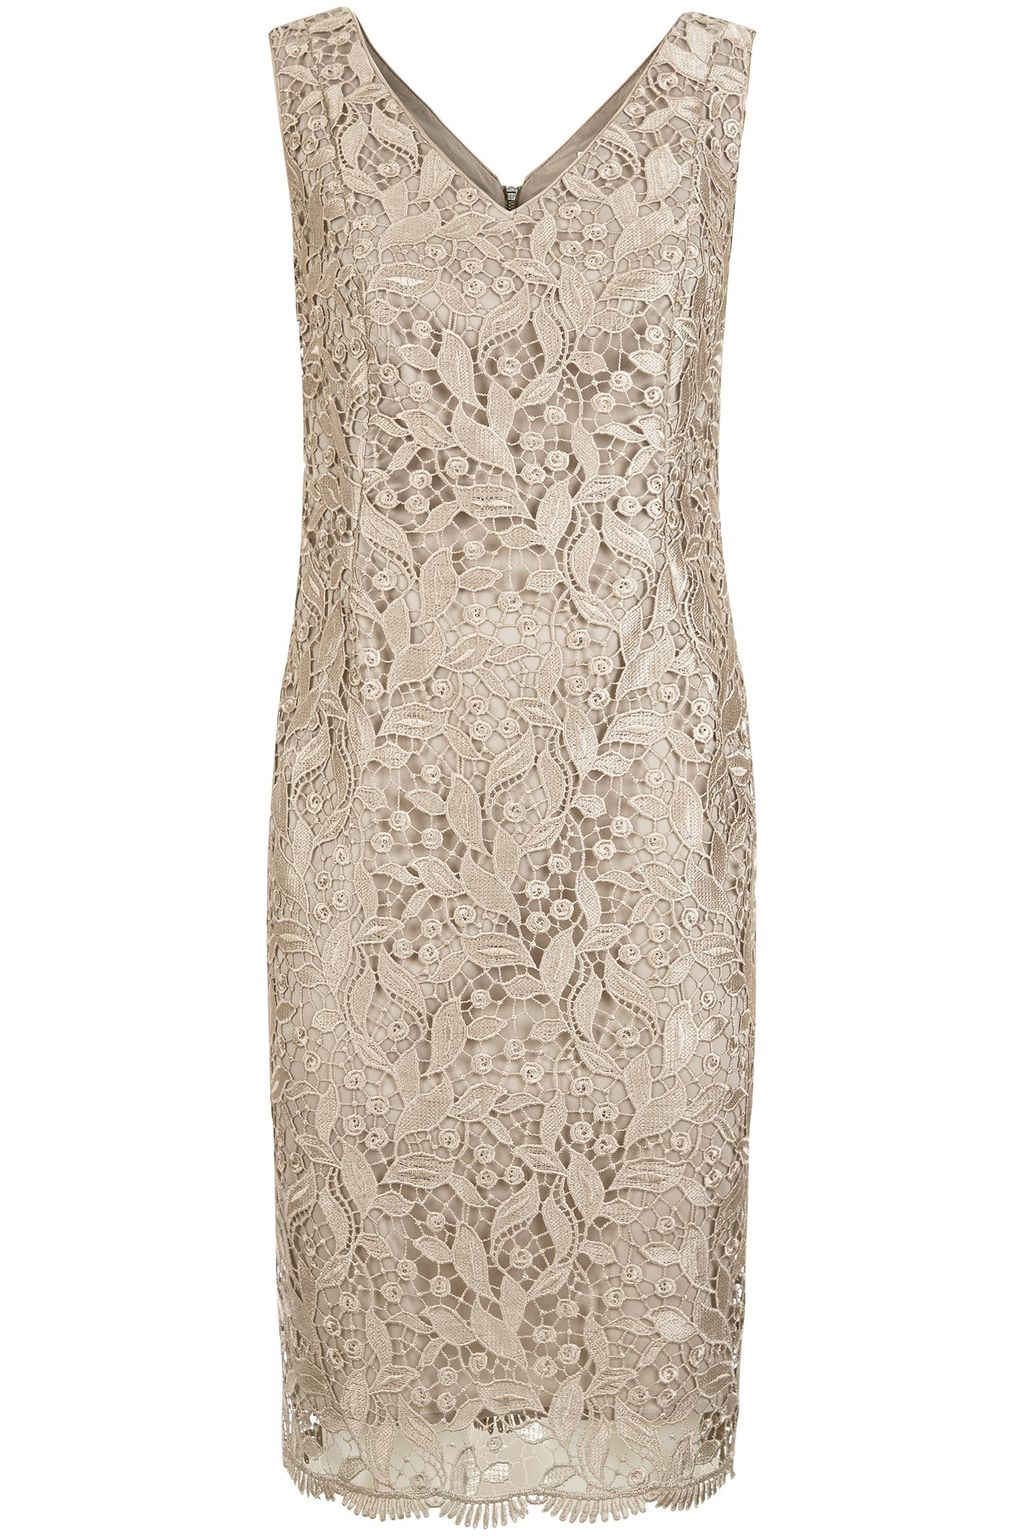 Chagall Dress, Gold - style: shift; neckline: v-neck; pattern: plain; sleeve style: sleeveless; predominant colour: gold; occasions: evening; length: just above the knee; fit: body skimming; fibres: polyester/polyamide - 100%; sleeve length: sleeveless; texture group: lace; pattern type: fabric; season: s/s 2016; wardrobe: event